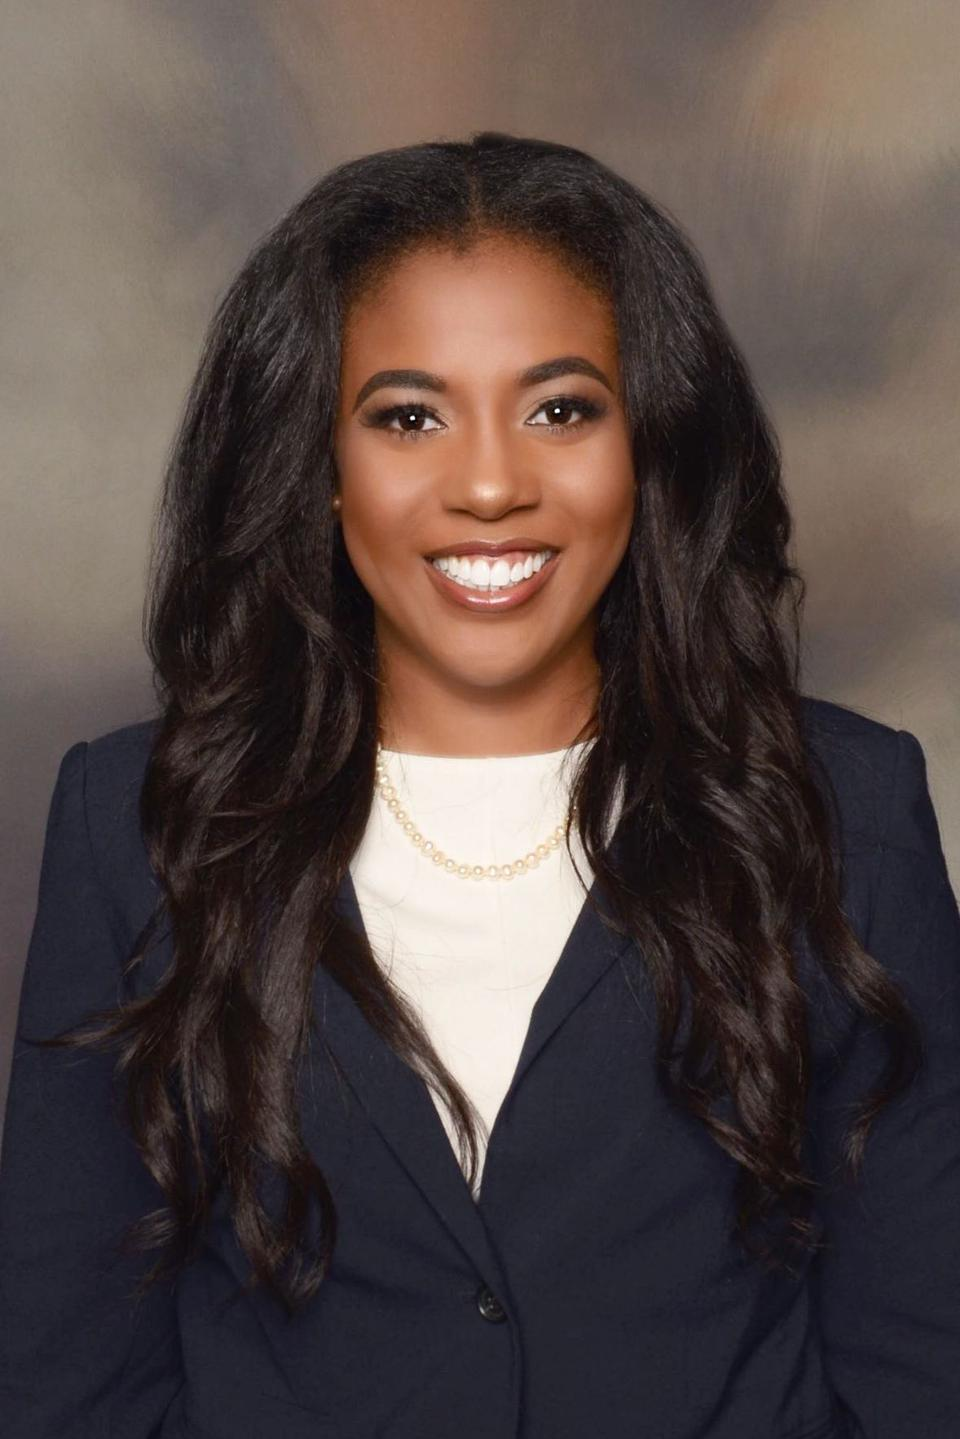 Headshot of Amber Hardeman in front of gray background.